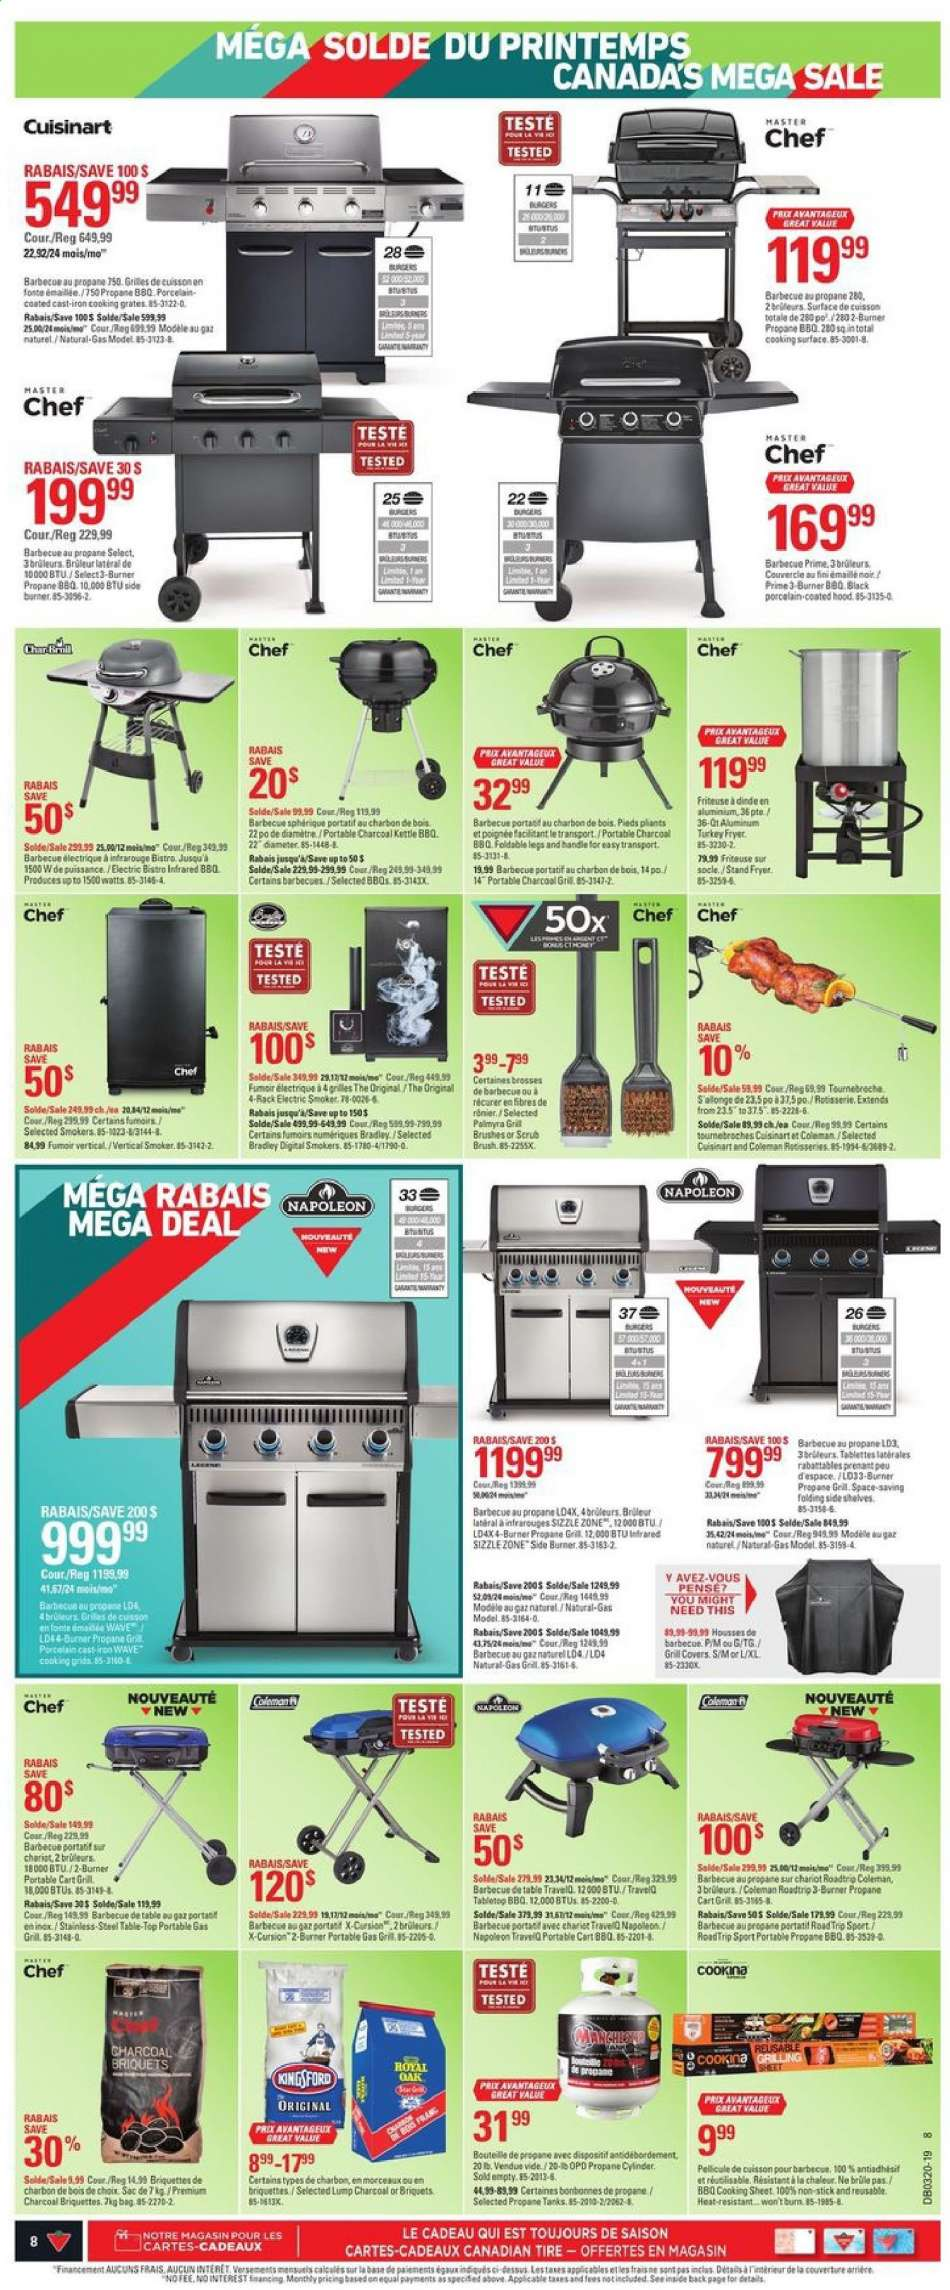 Ikea Barbecue Charbon De Bois current canadian tire flyer may 09, 2019 - may 15, 2019 | ca